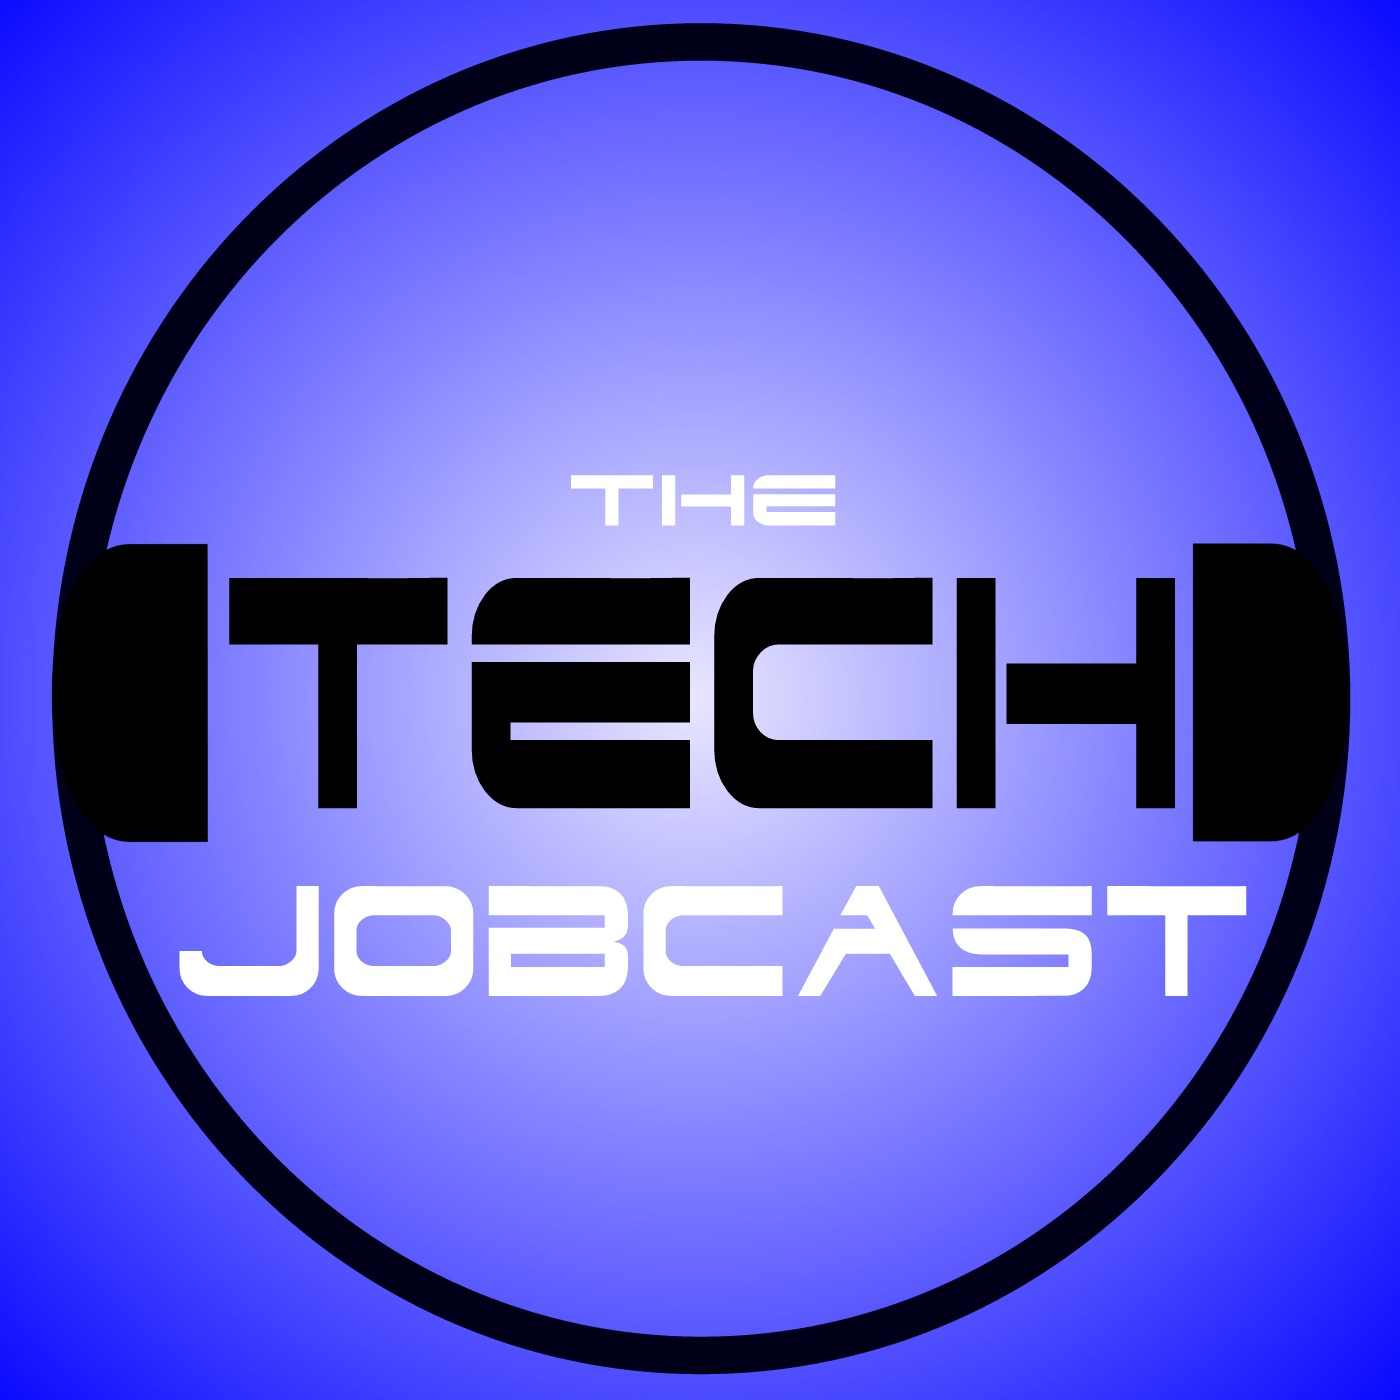 IT Job listings for the week of August 6, 2017